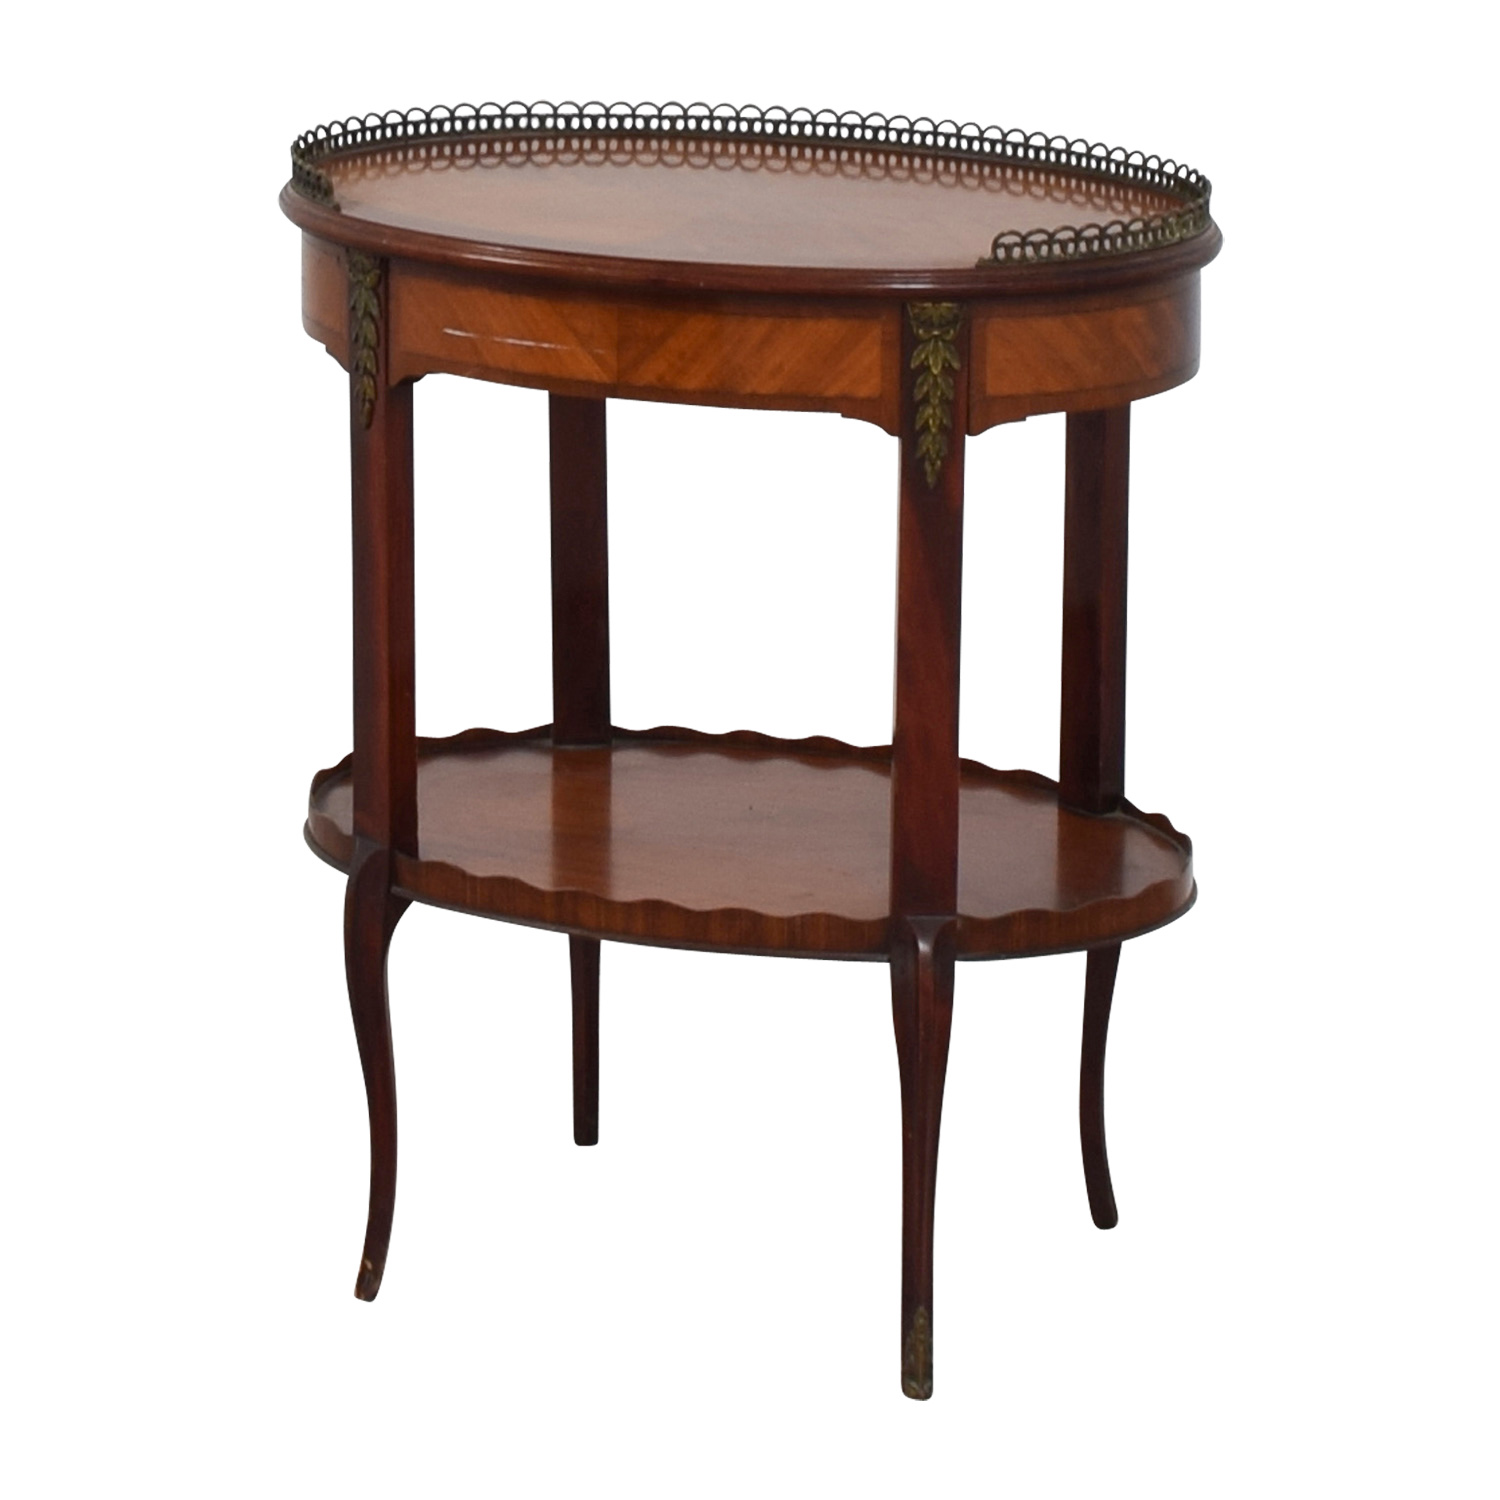 Furniture Masters Oval End Table with Scalloped and Brass Edges sale